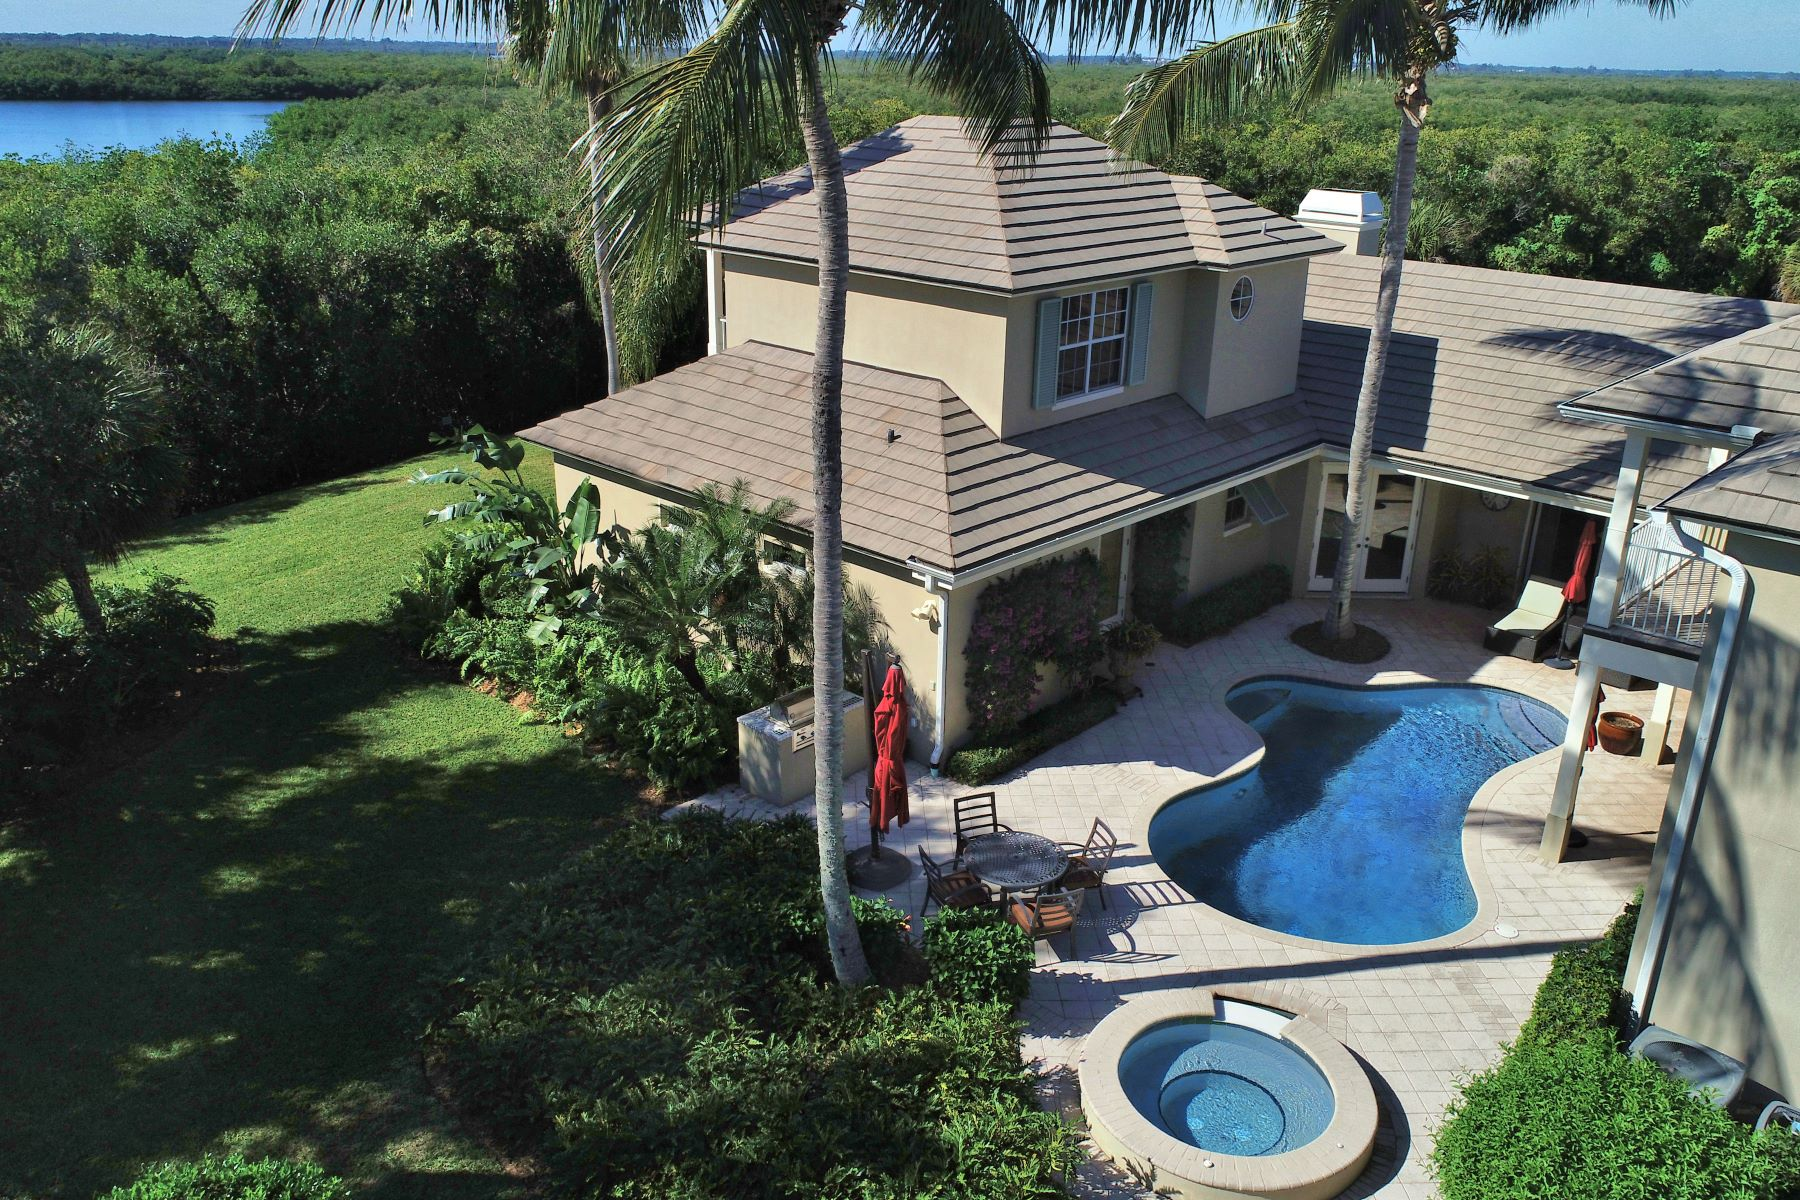 Courtyard Estate 945 Orchid Point Way Vero Beach, Florida 32963 Estados Unidos